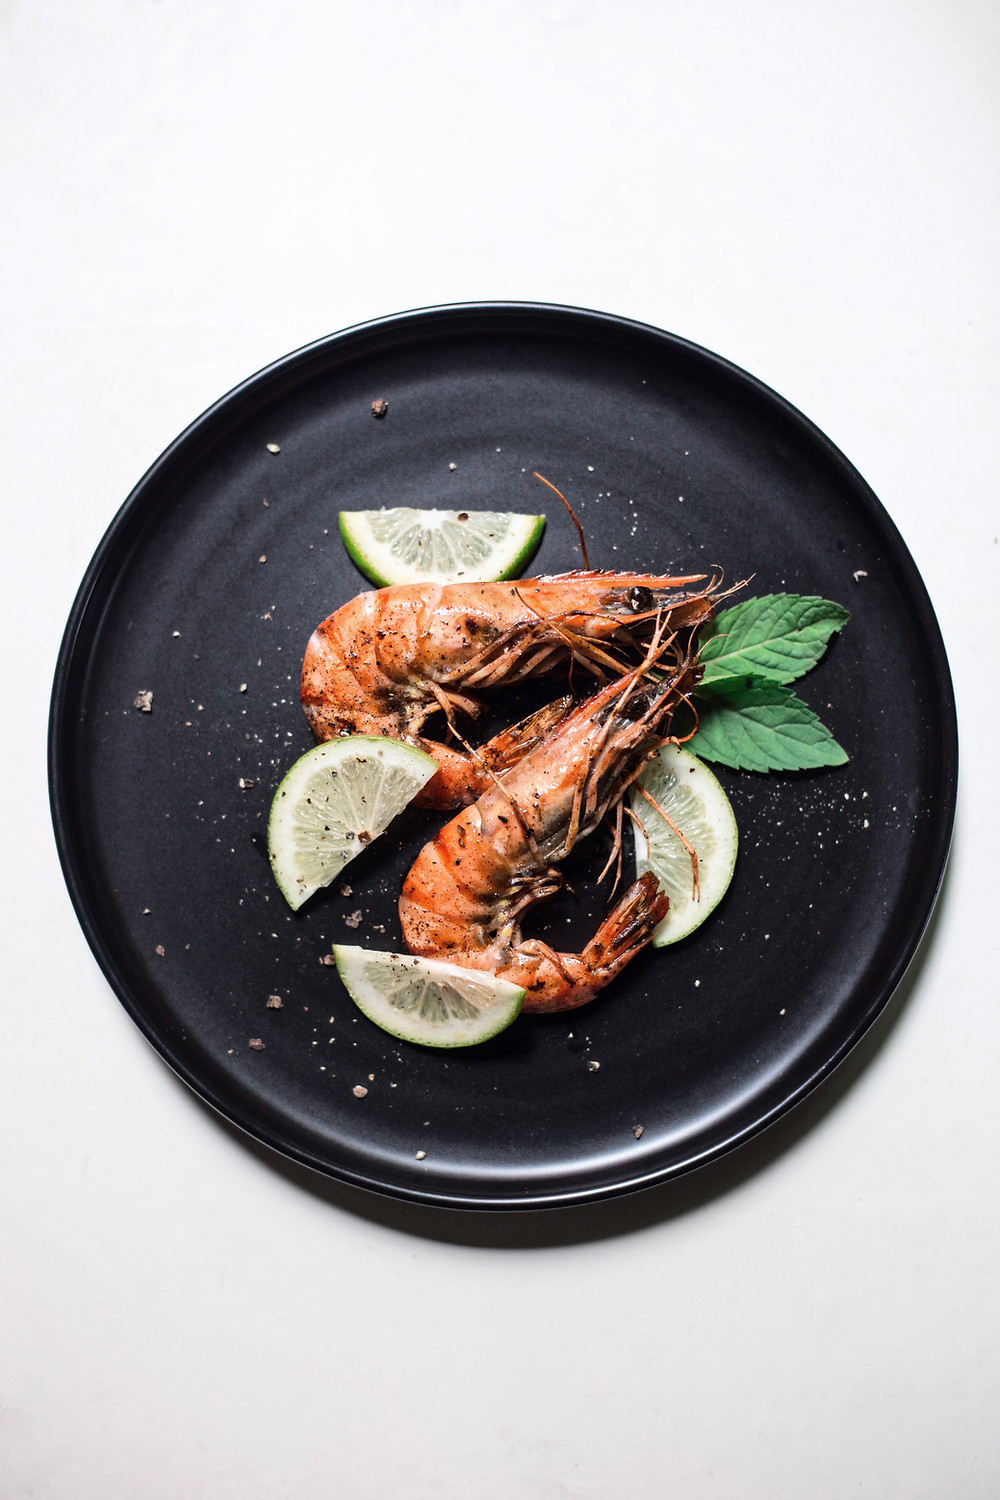 Plate of shrimp may act as a food trigger in chronic hives